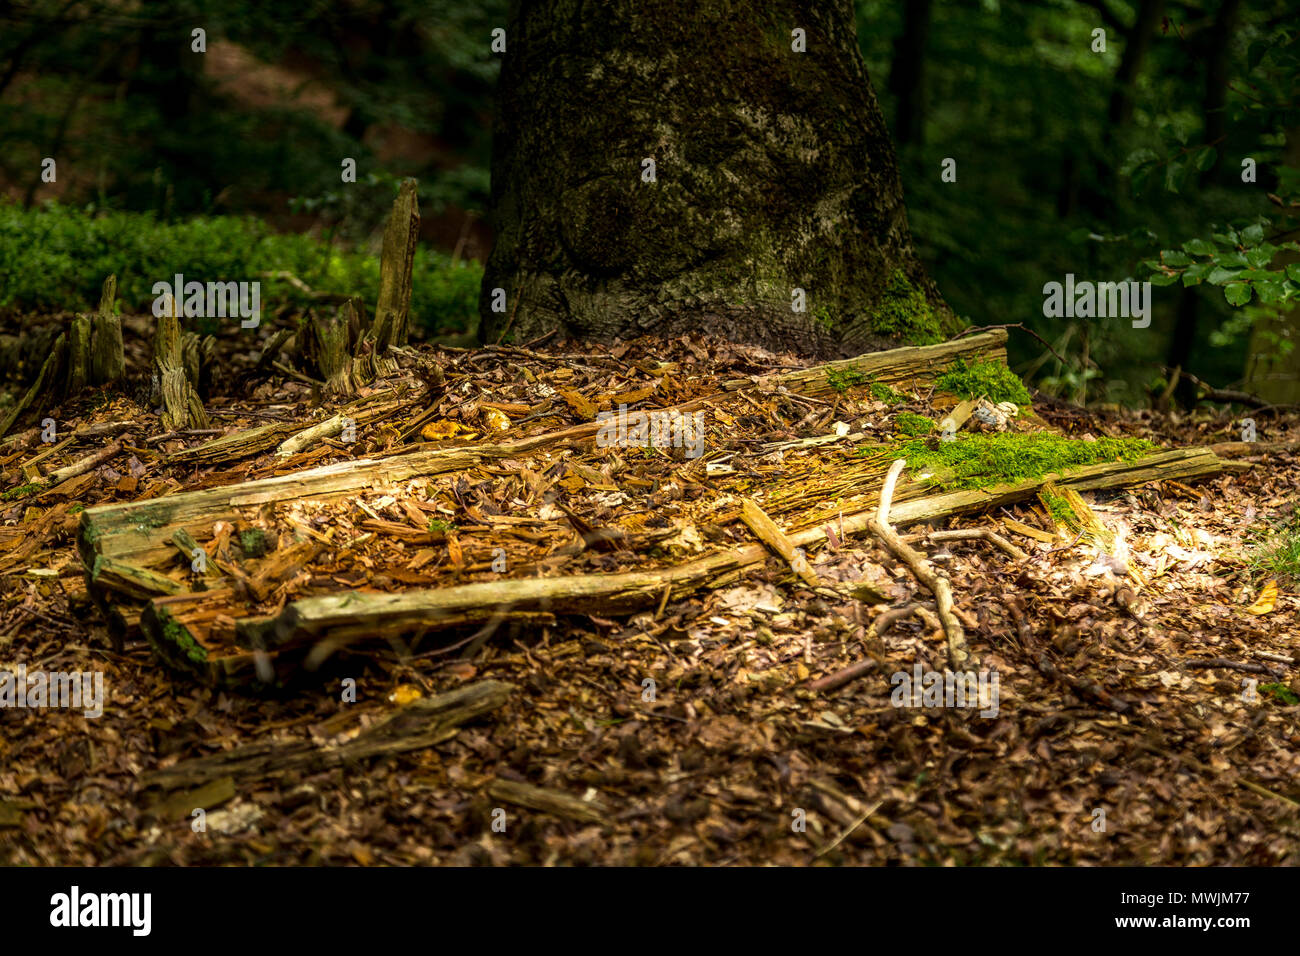 In the wood - Stock Image